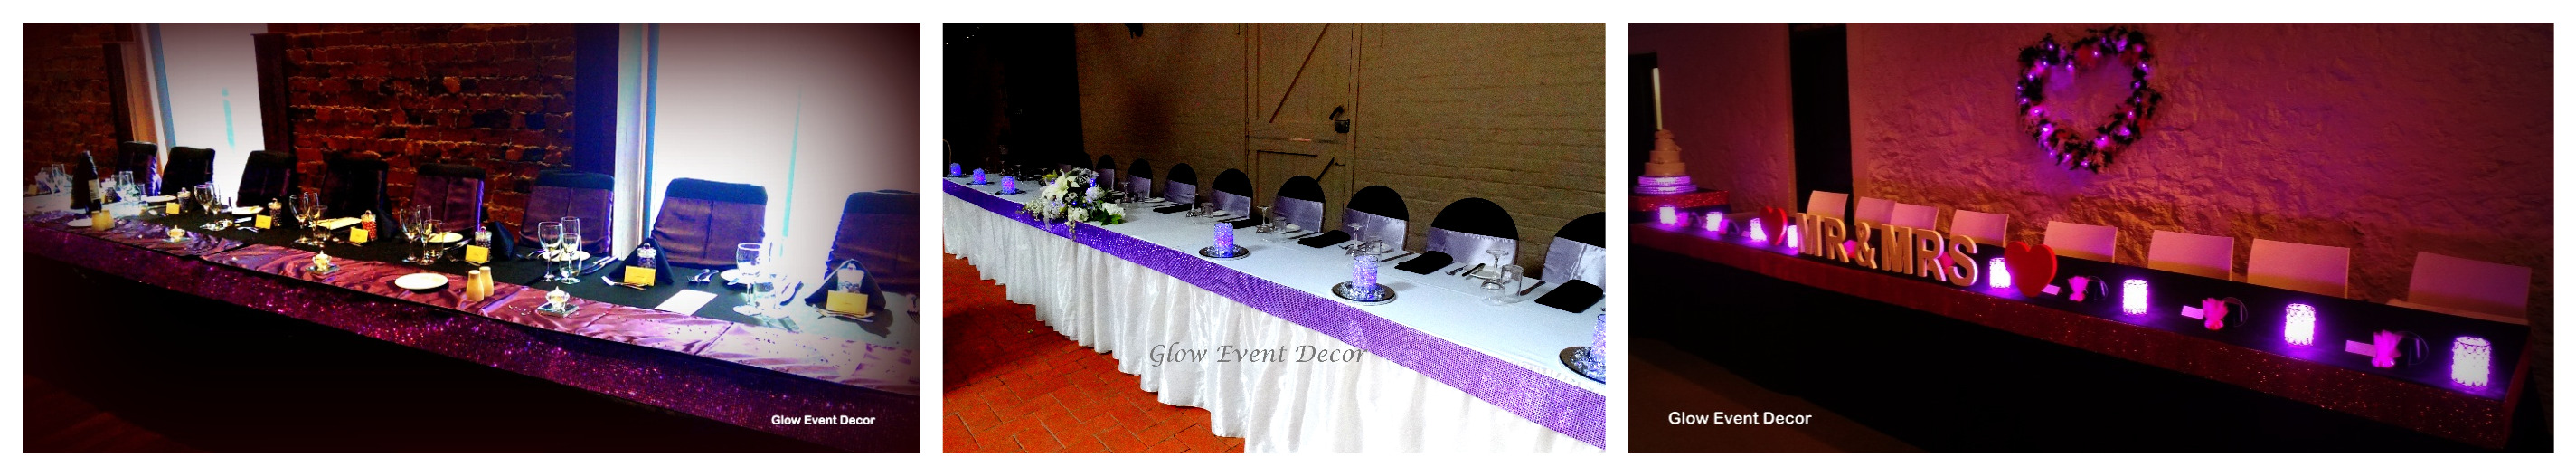 diamantle table edging for bridal wedding tables for hire glow event decor